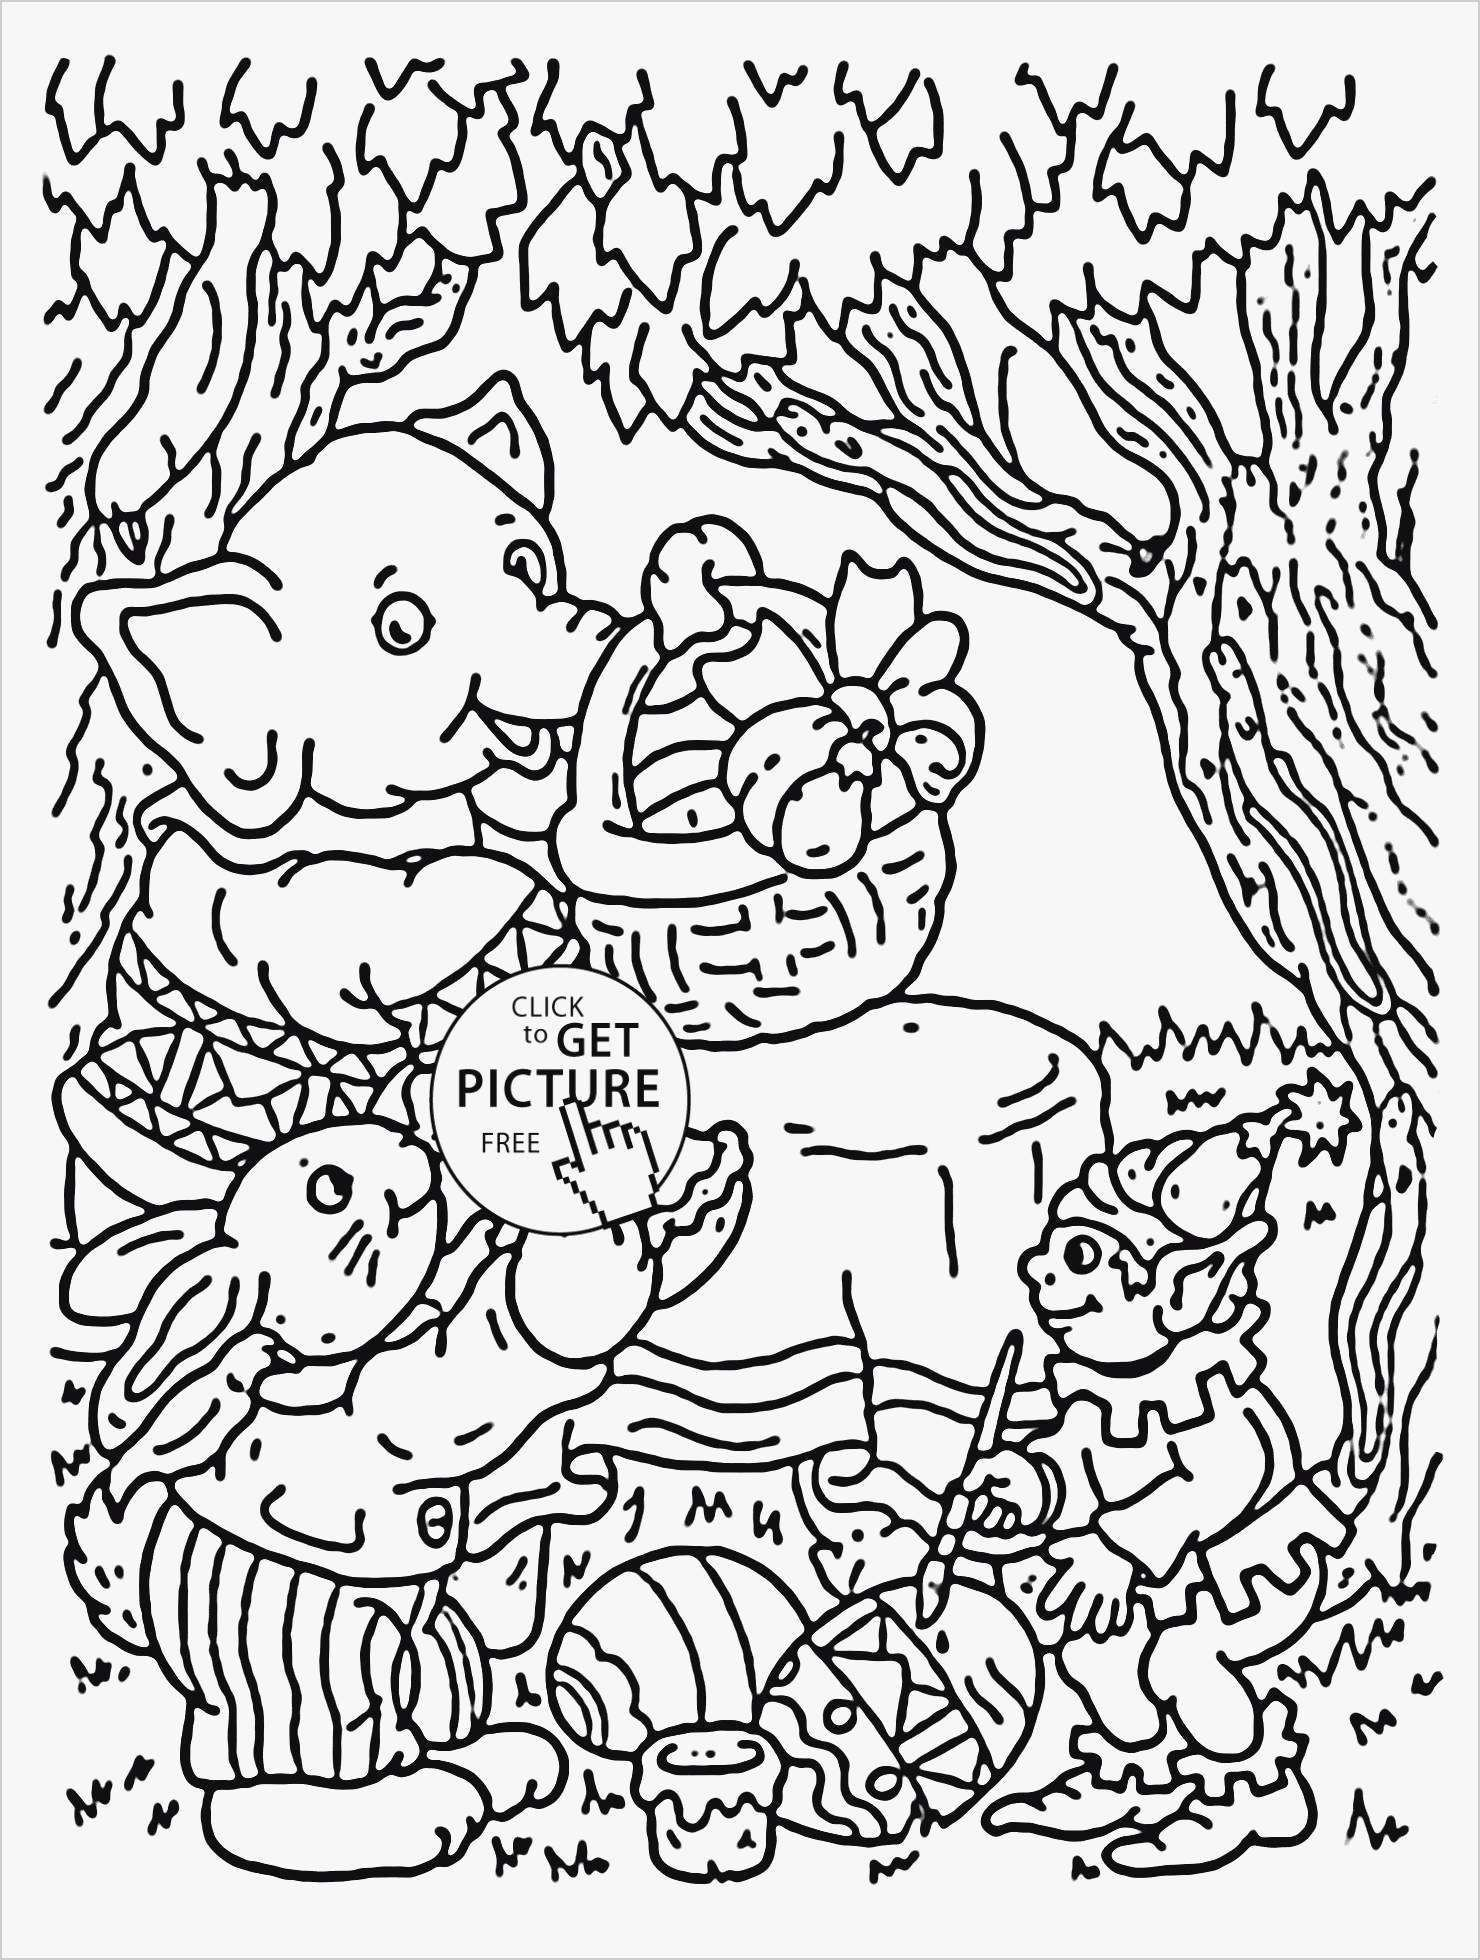 25 Elegant Photo Of Printable Disney Coloring Pages Albanysinsanity Com Animal Coloring Pages Turtle Coloring Pages Mermaid Coloring Pages